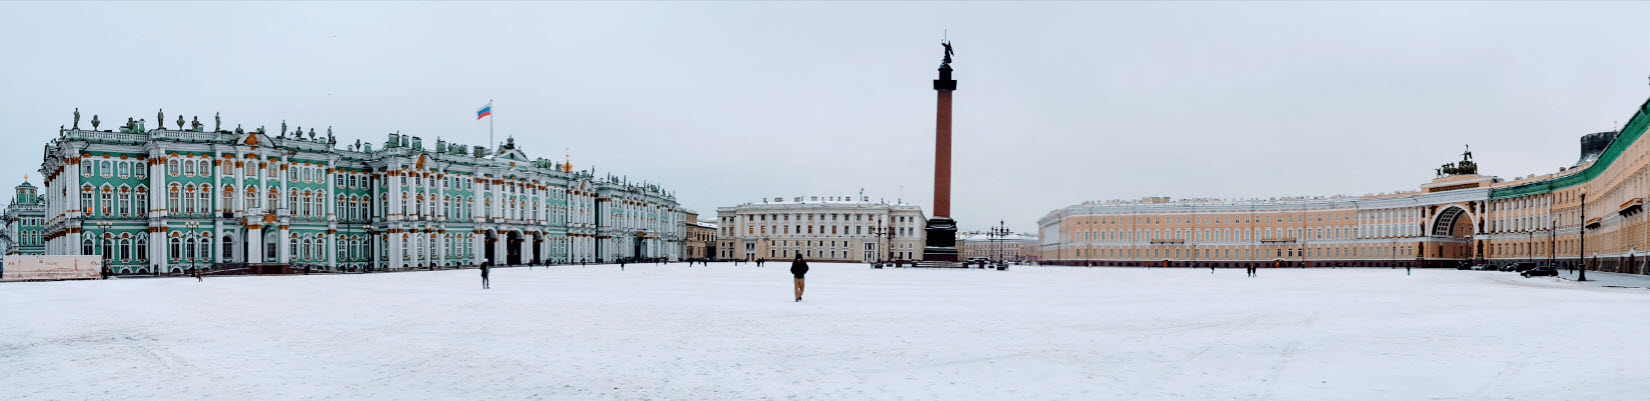 Palace Square, St Petersburg, January 2018